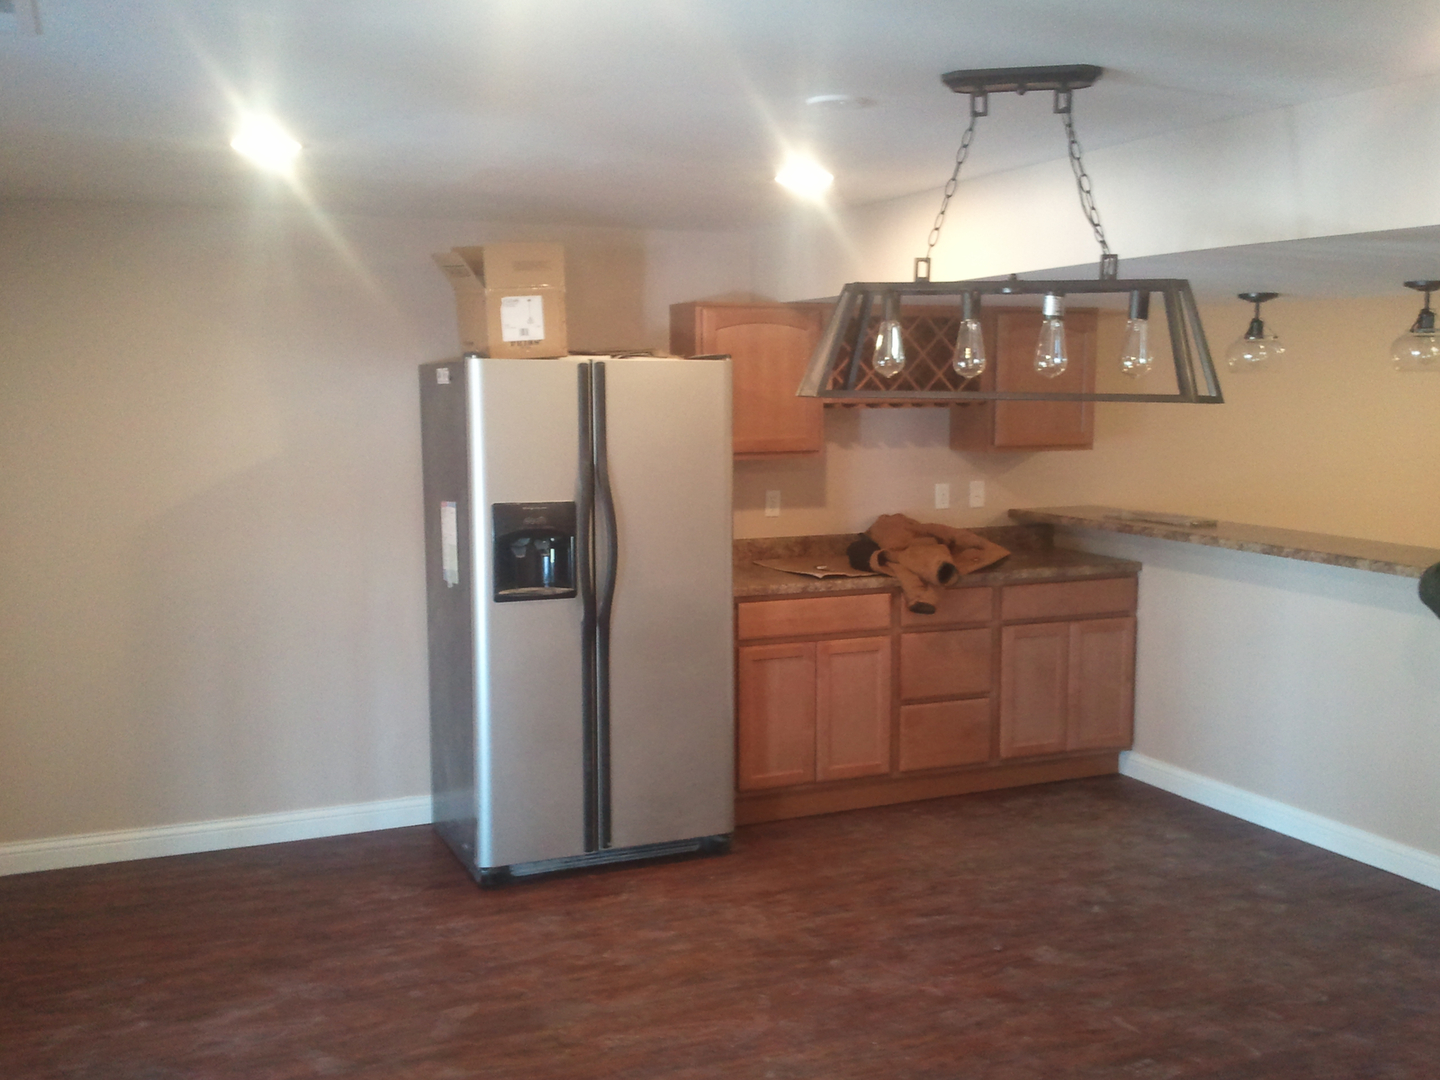 Kitchen Remodeling in Northern KY